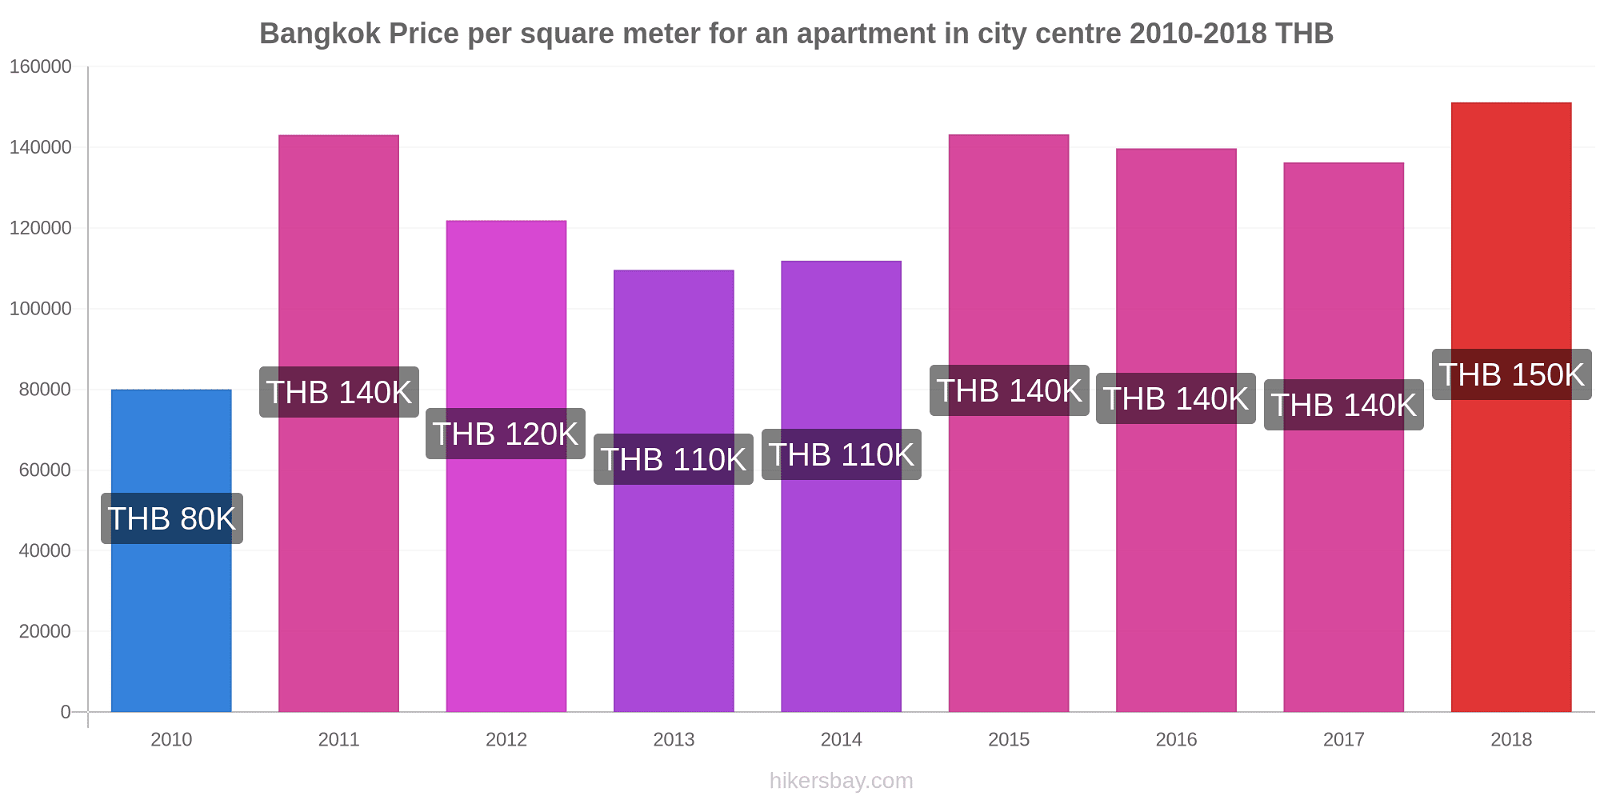 Bangkok price changes Price per square meter for an apartment in city centre hikersbay.com